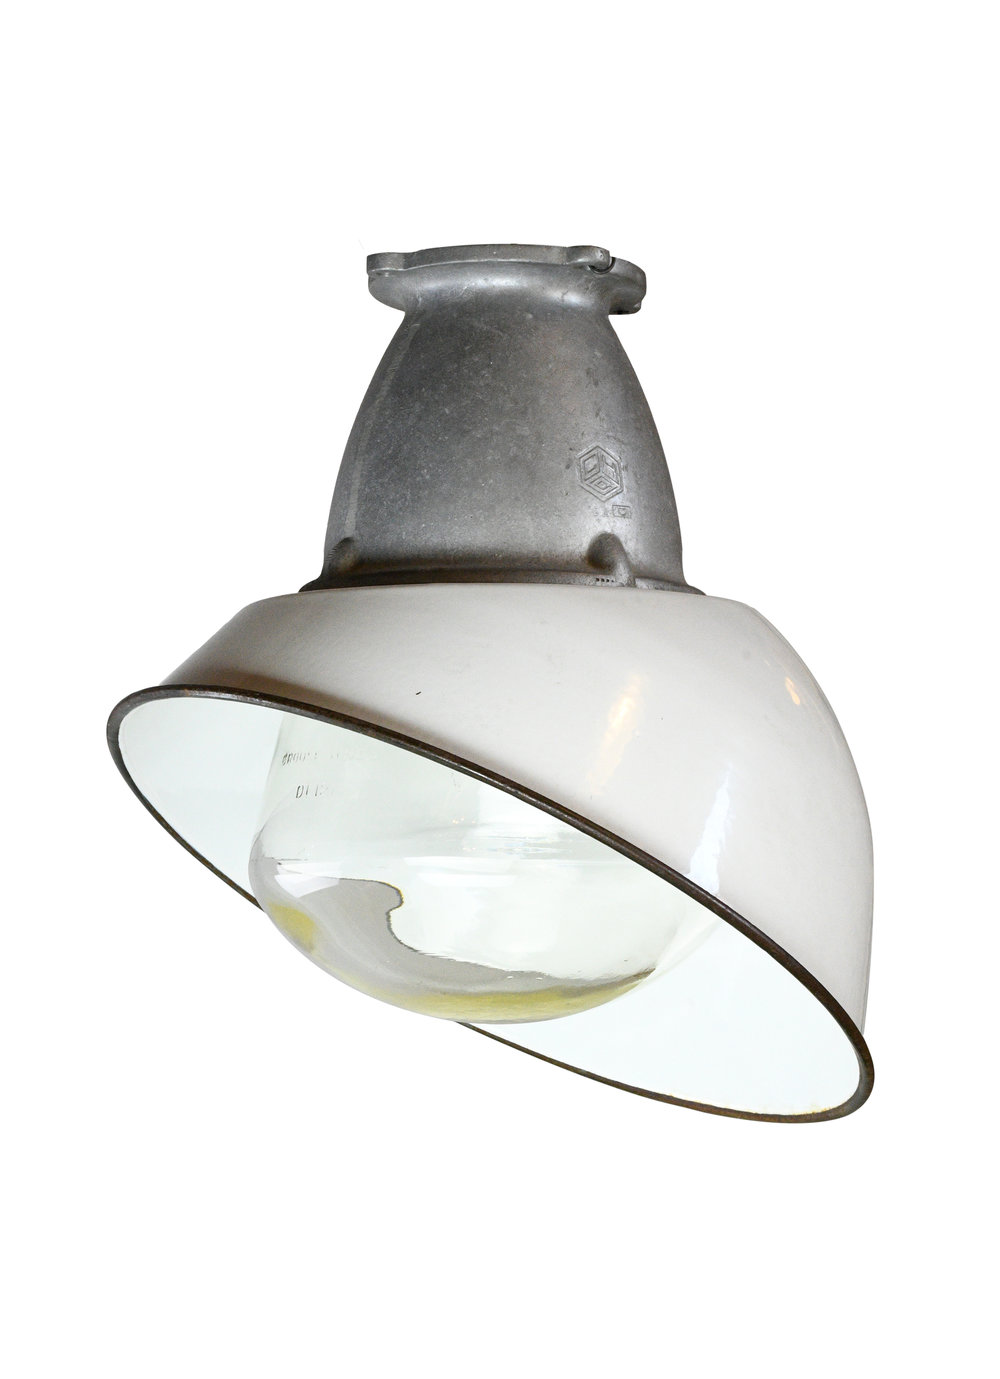 46283-industral-flushmount-pendant-with-thick-glass-17.jpg